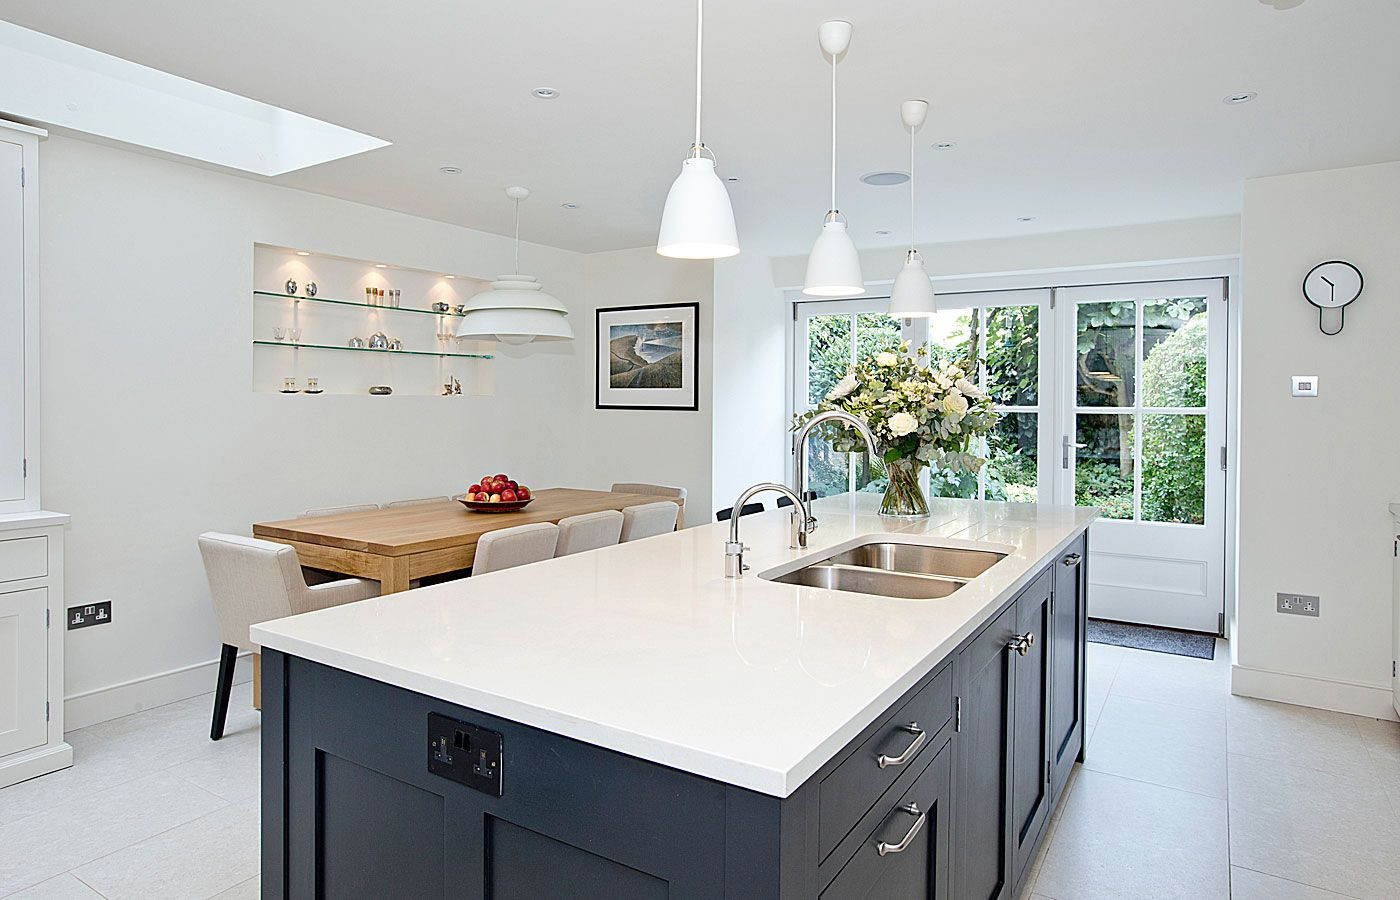 High End Kitchen Design Awesome High End Kitchen Design  South West London  Kitchen Designers Review